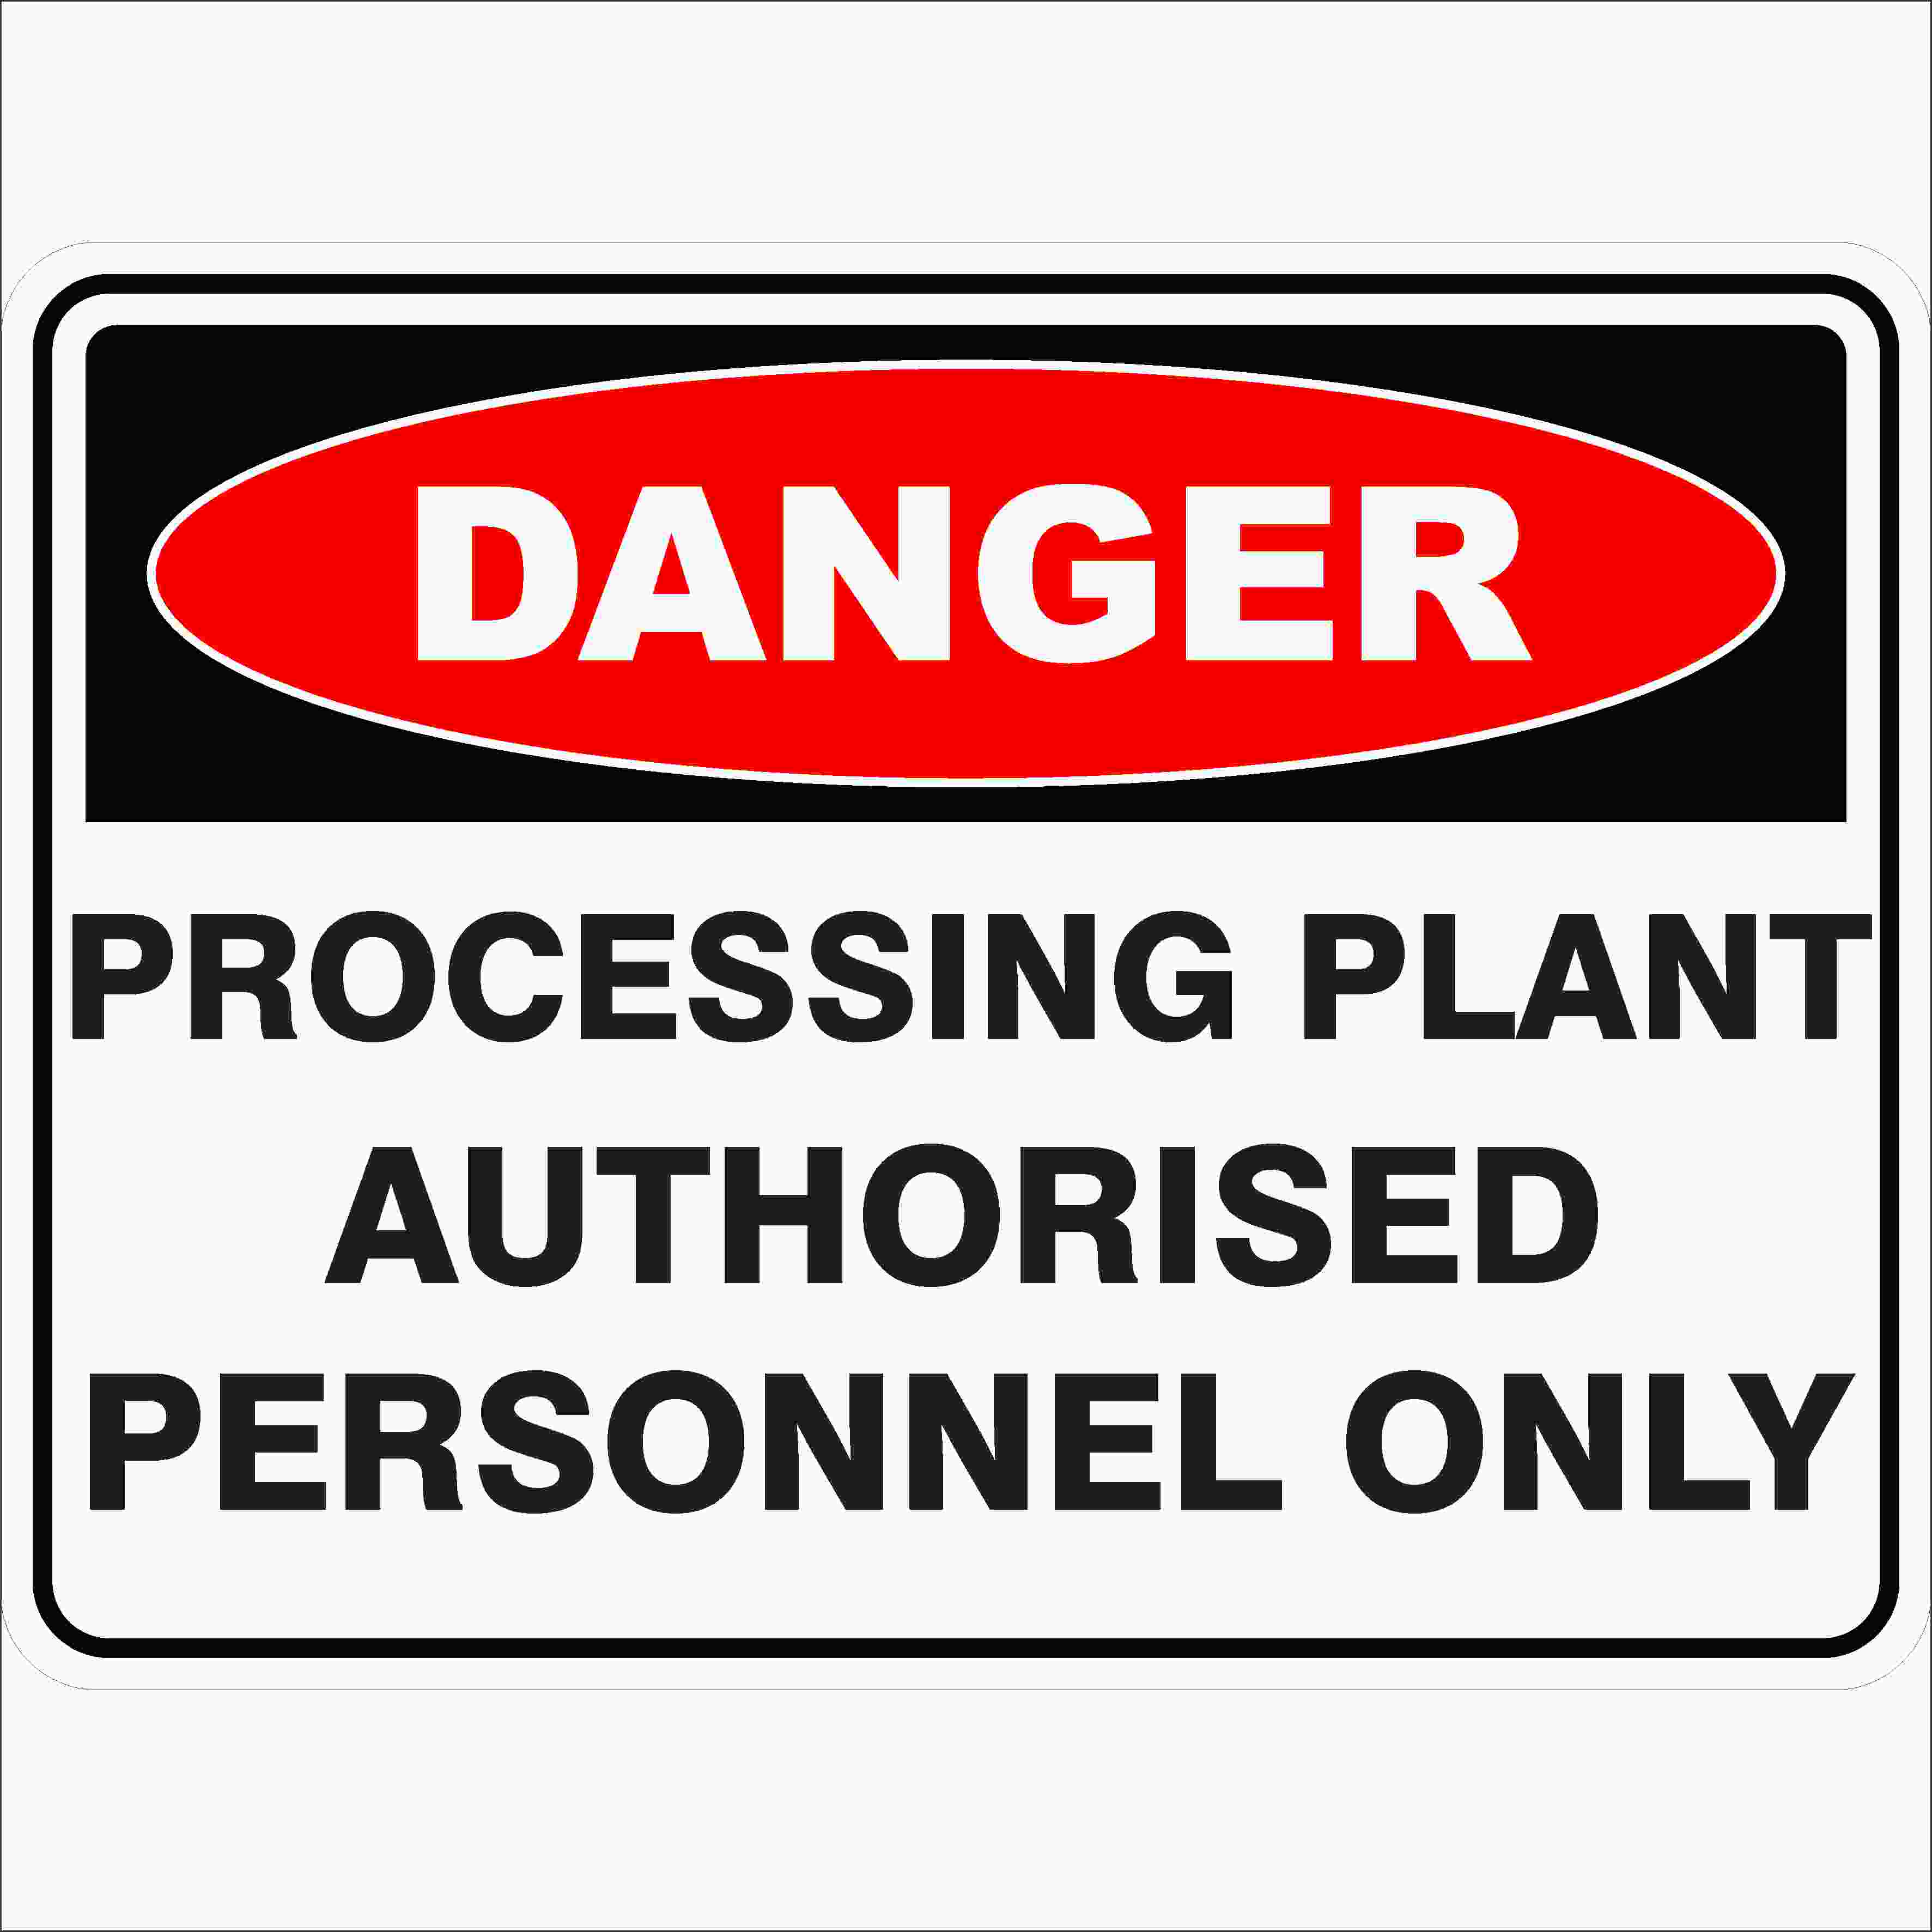 Danger Signs PROCESSING PLANT AUTHORISED PERSONNEL ONLY